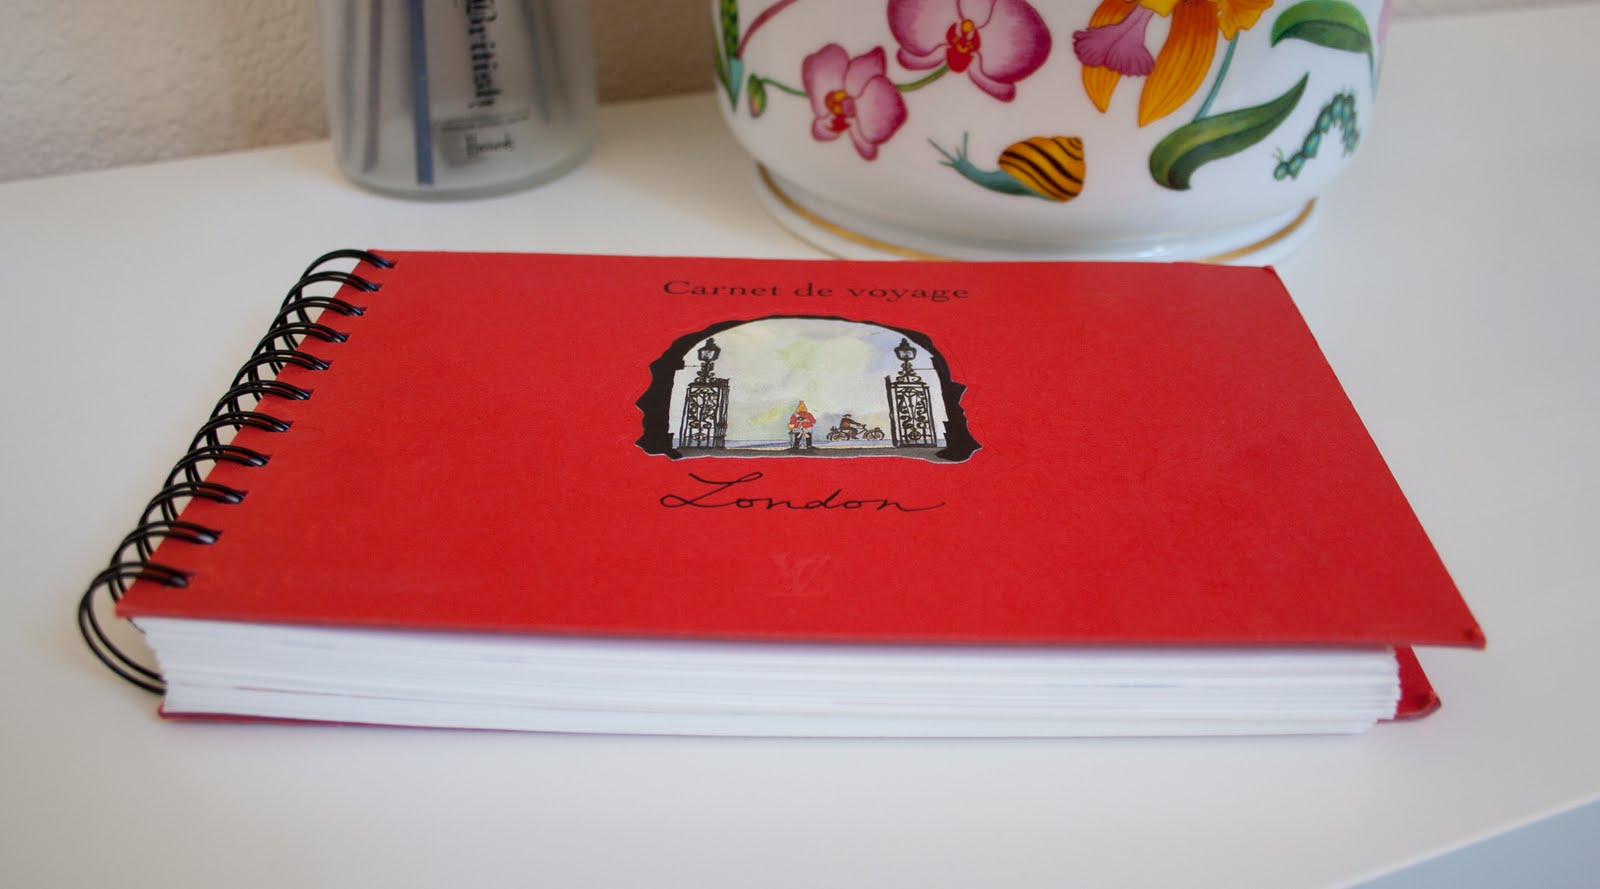 travel journal 1 02 Make it yourself: travel journal posted on february 26, 2013 by thriftytravelmama i've long ogled the amazing travel journals littering pinterest , and i finally decided it was time to make one myself.